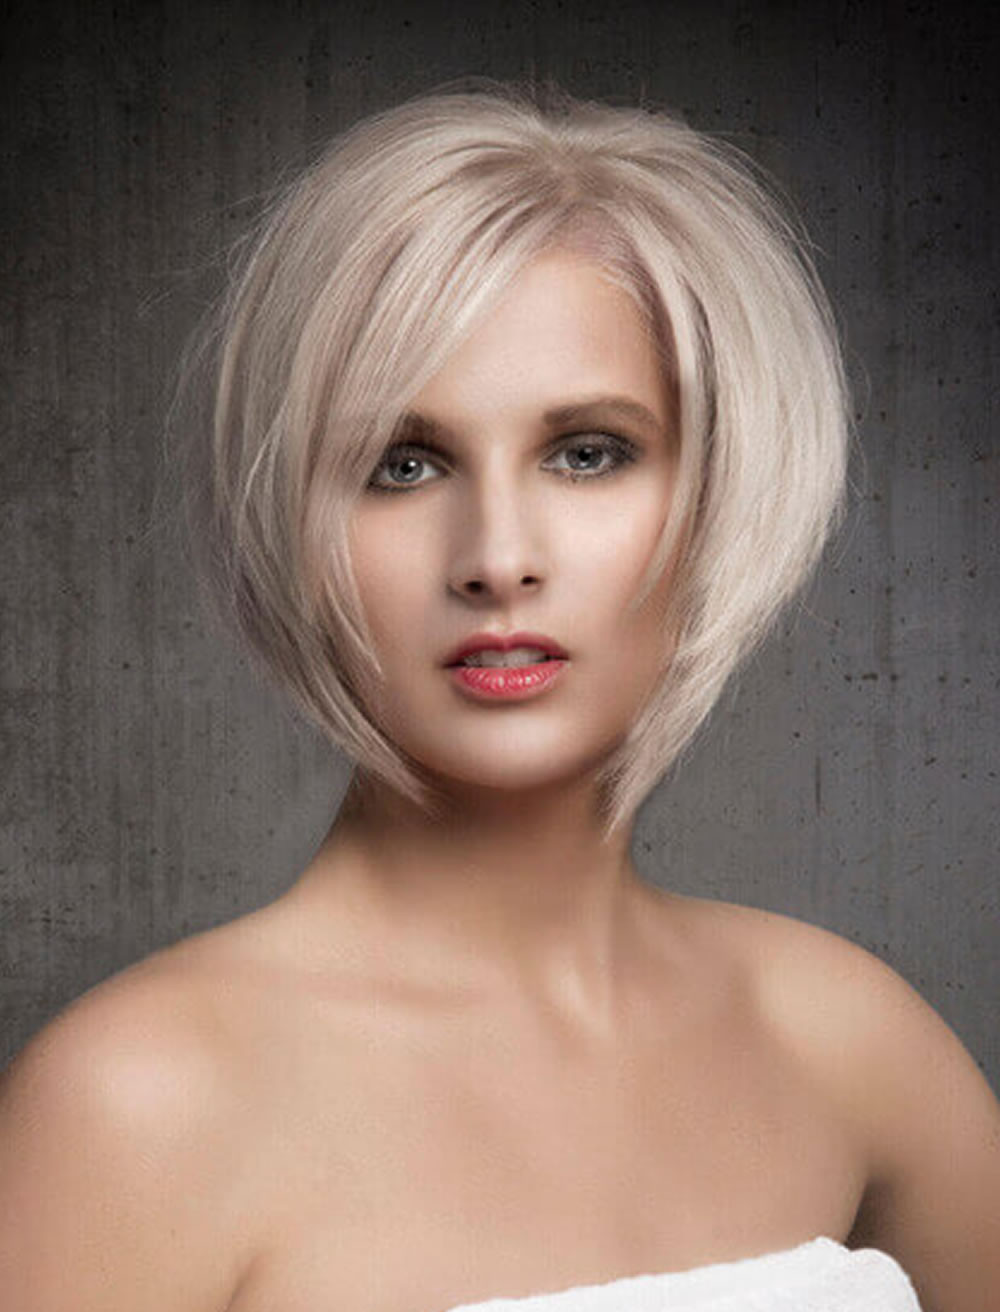 Best ideas about Trending Haircuts . Save or Pin 2018 Short Haircut Trends & Short Hairstyle ideas for Now.